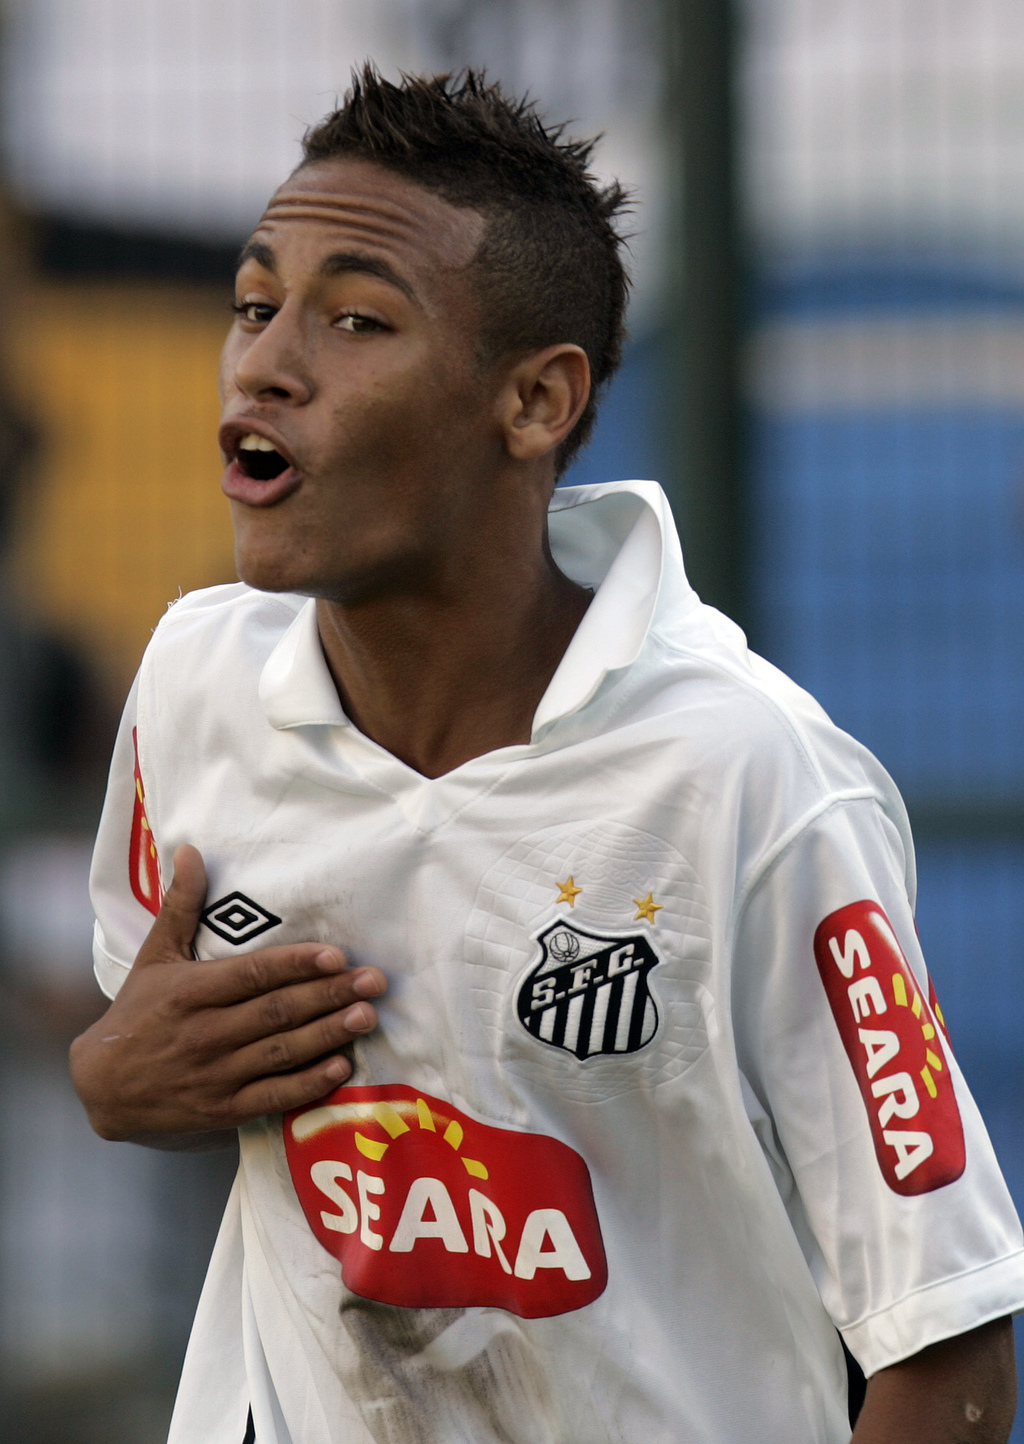 FILE - In this Sunday, May 2, 2010 file photo, Santos' Neymar celebrates after scoring during the Sao Paulo state championship soccer final match agai...